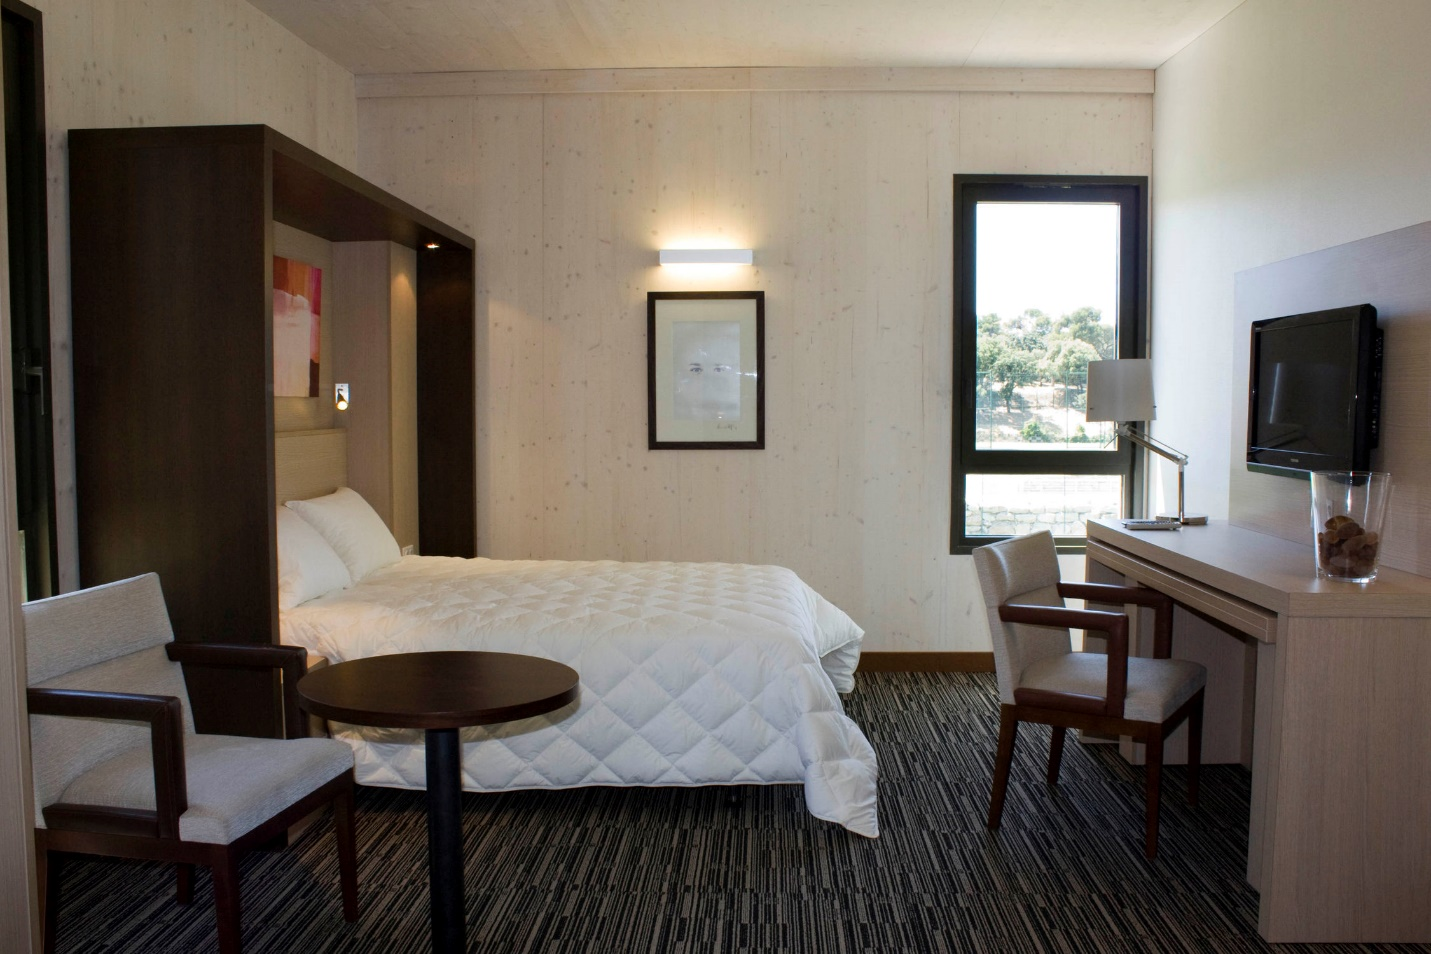 Hotel Room with small-scale furniture and pull-out desk to make it feel larger